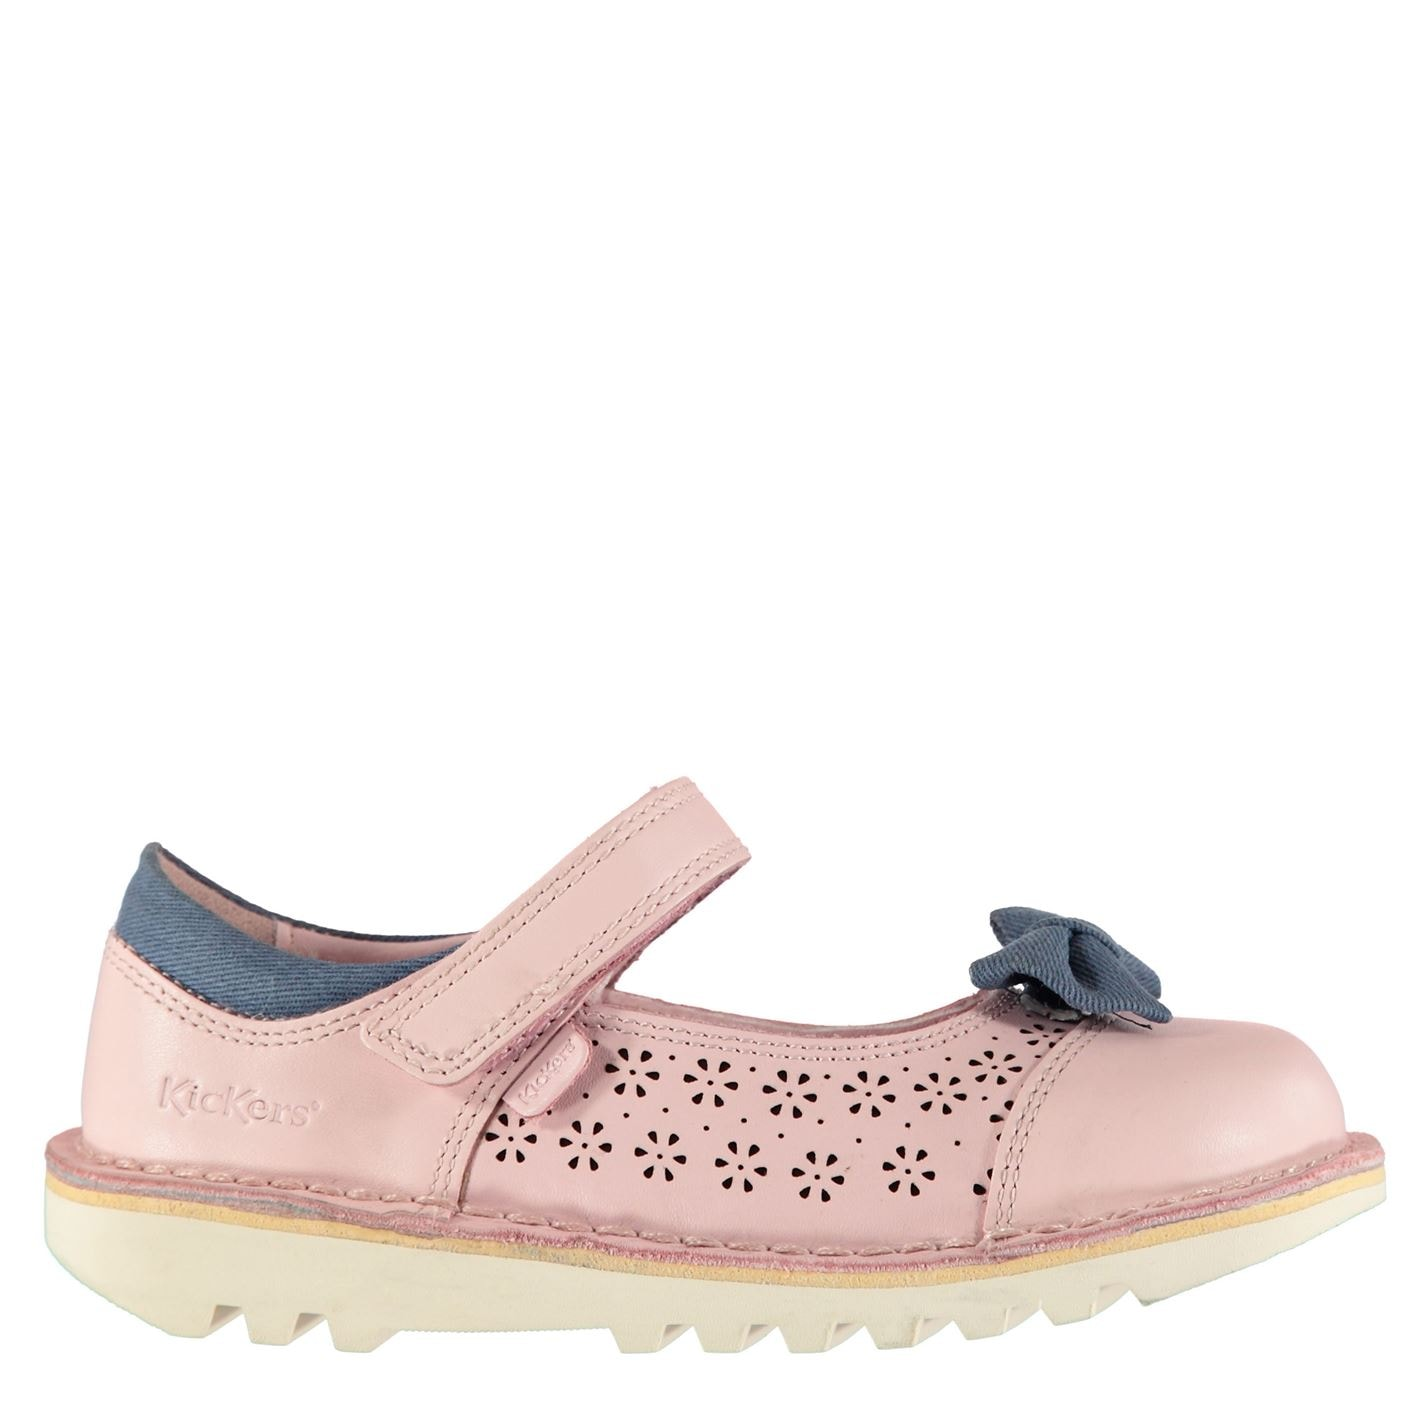 Kickers Kickers Bowtie 2 Infant Girls Shoes Pink